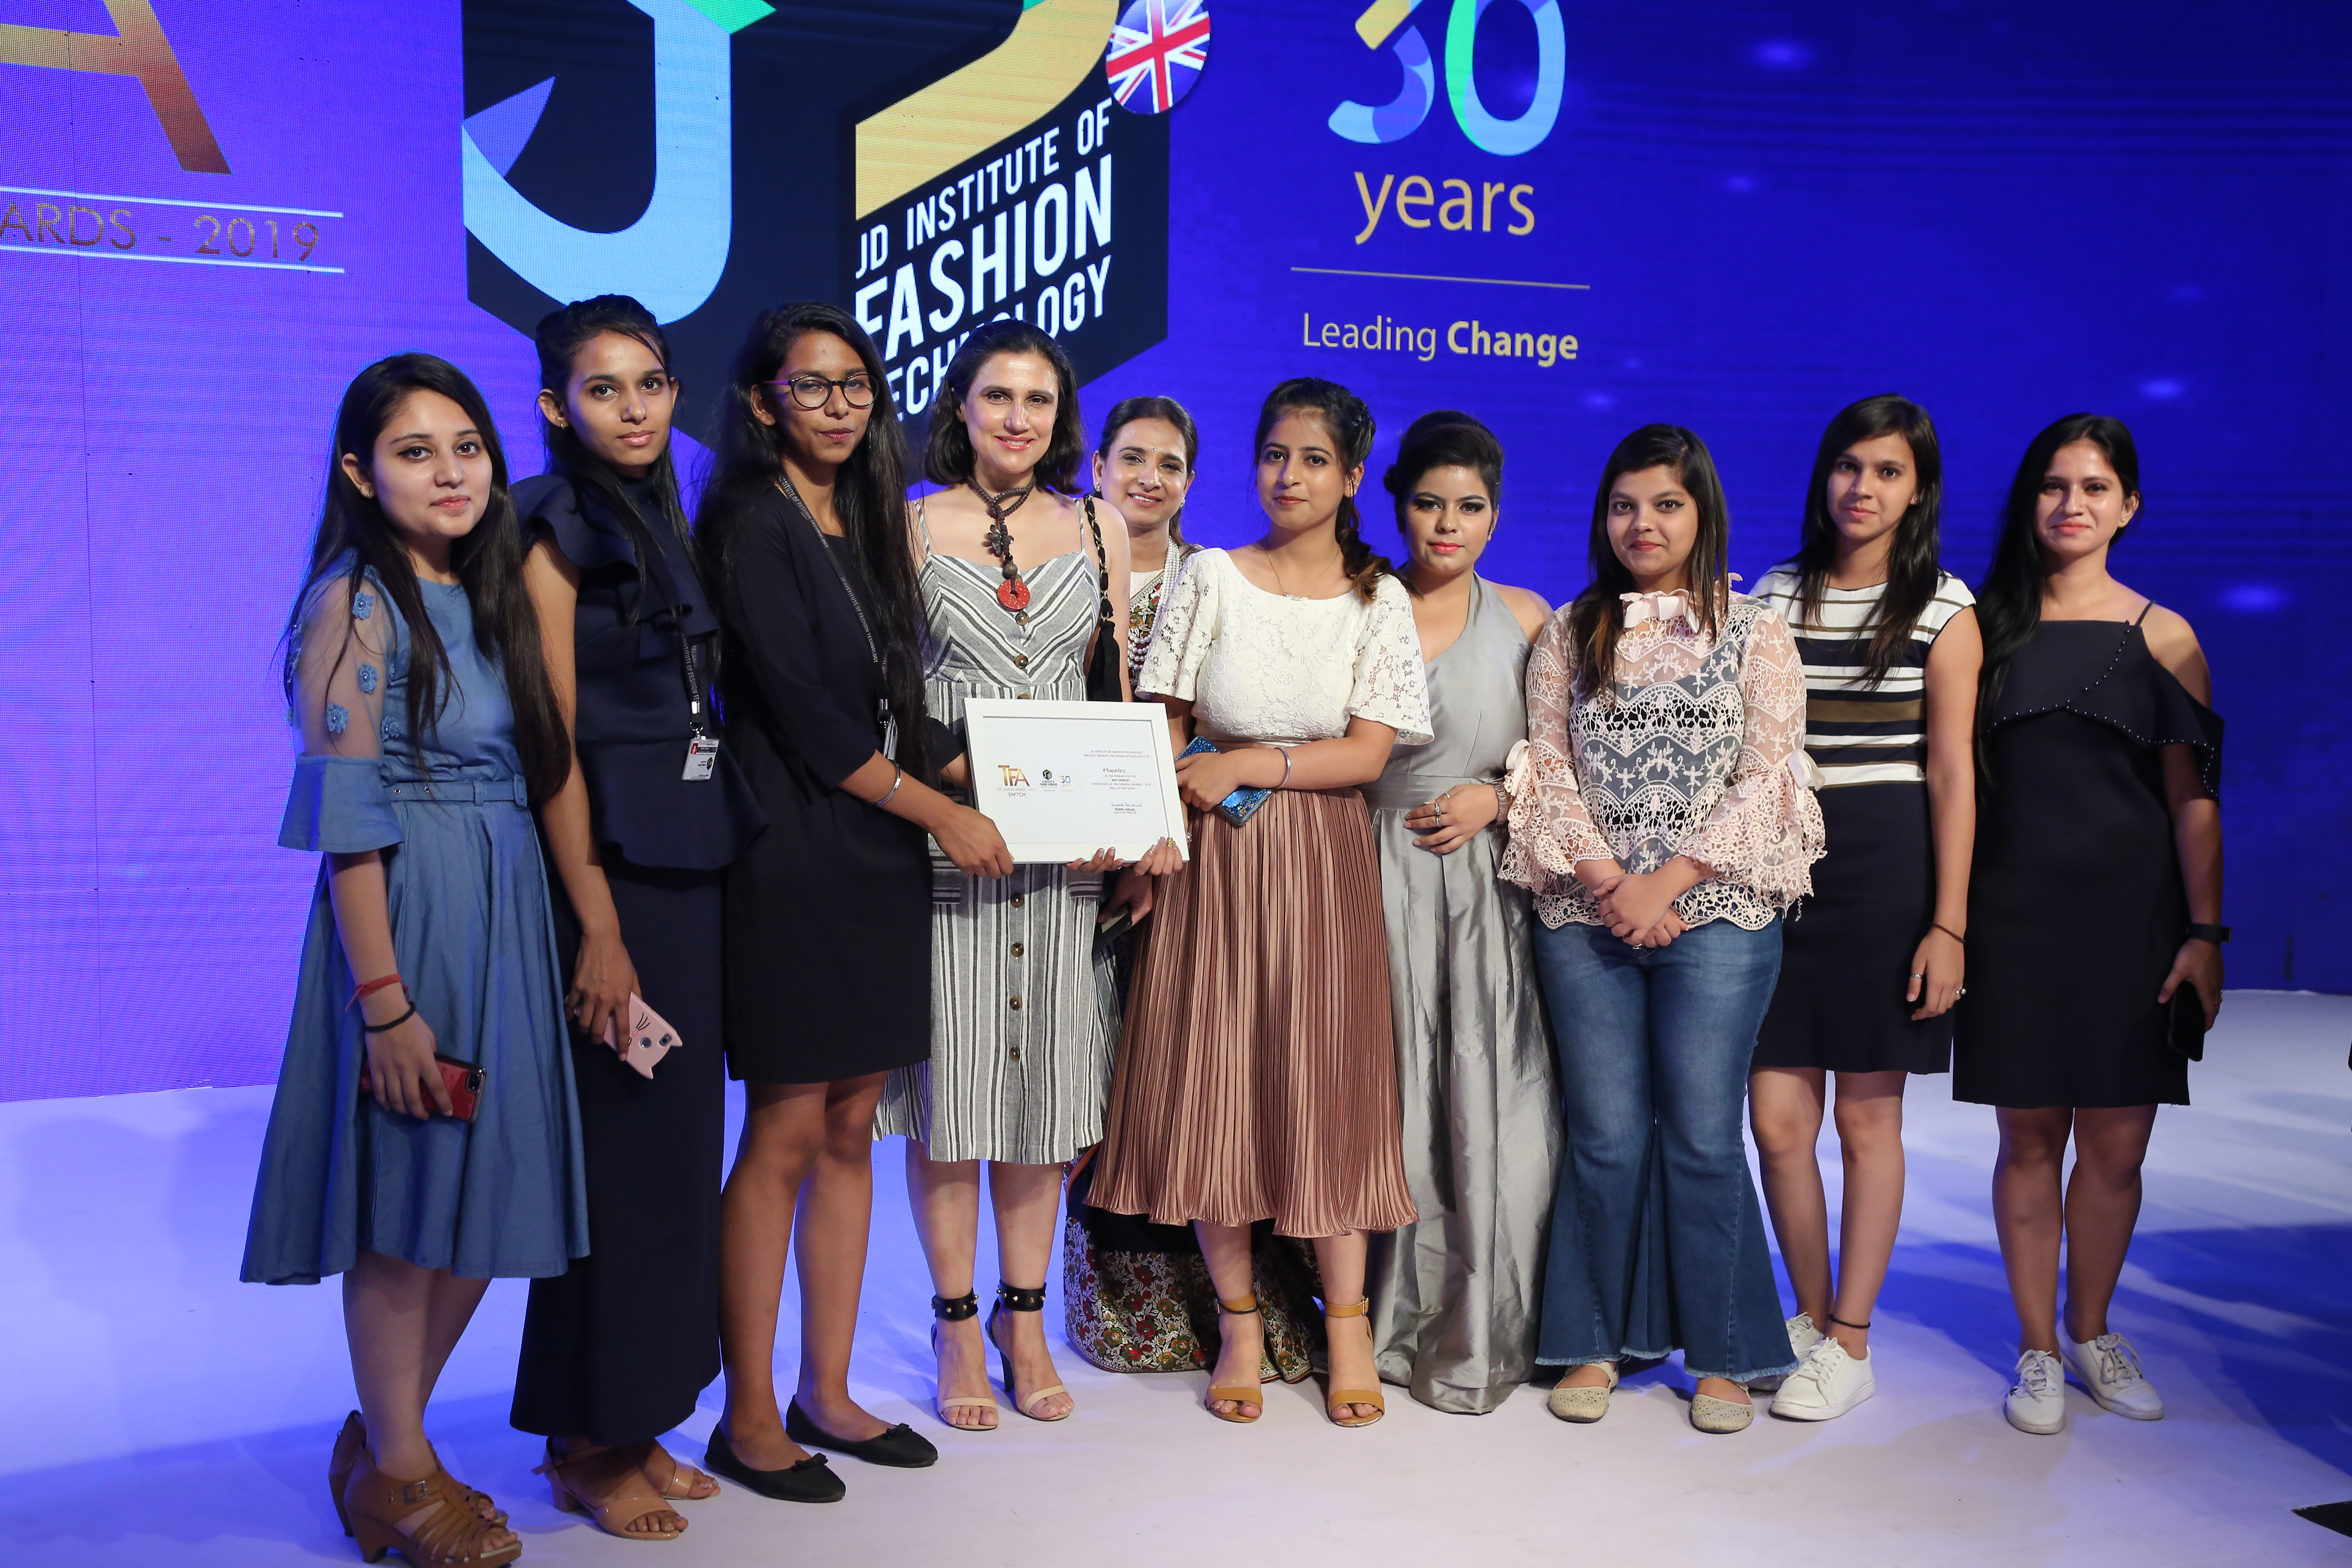 Jd Institute Of Fashion Technology Gurgaon Corporate Extension Centre Courses Fees Placements Ranking Admission 2020